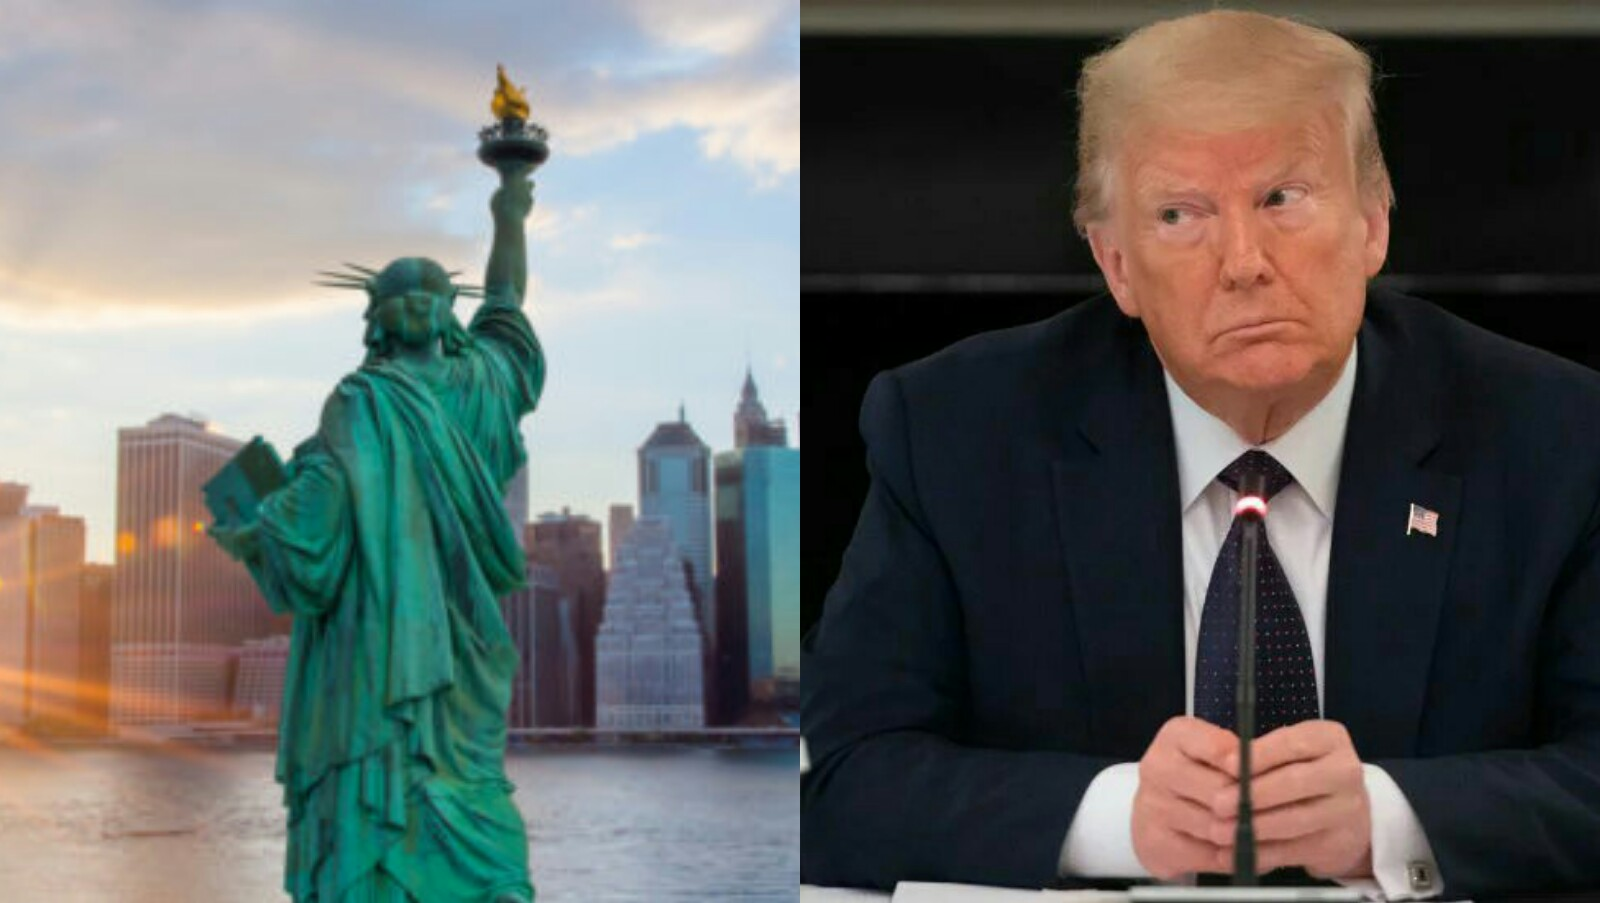 New York City Considering Ending Business Contracts With Trump